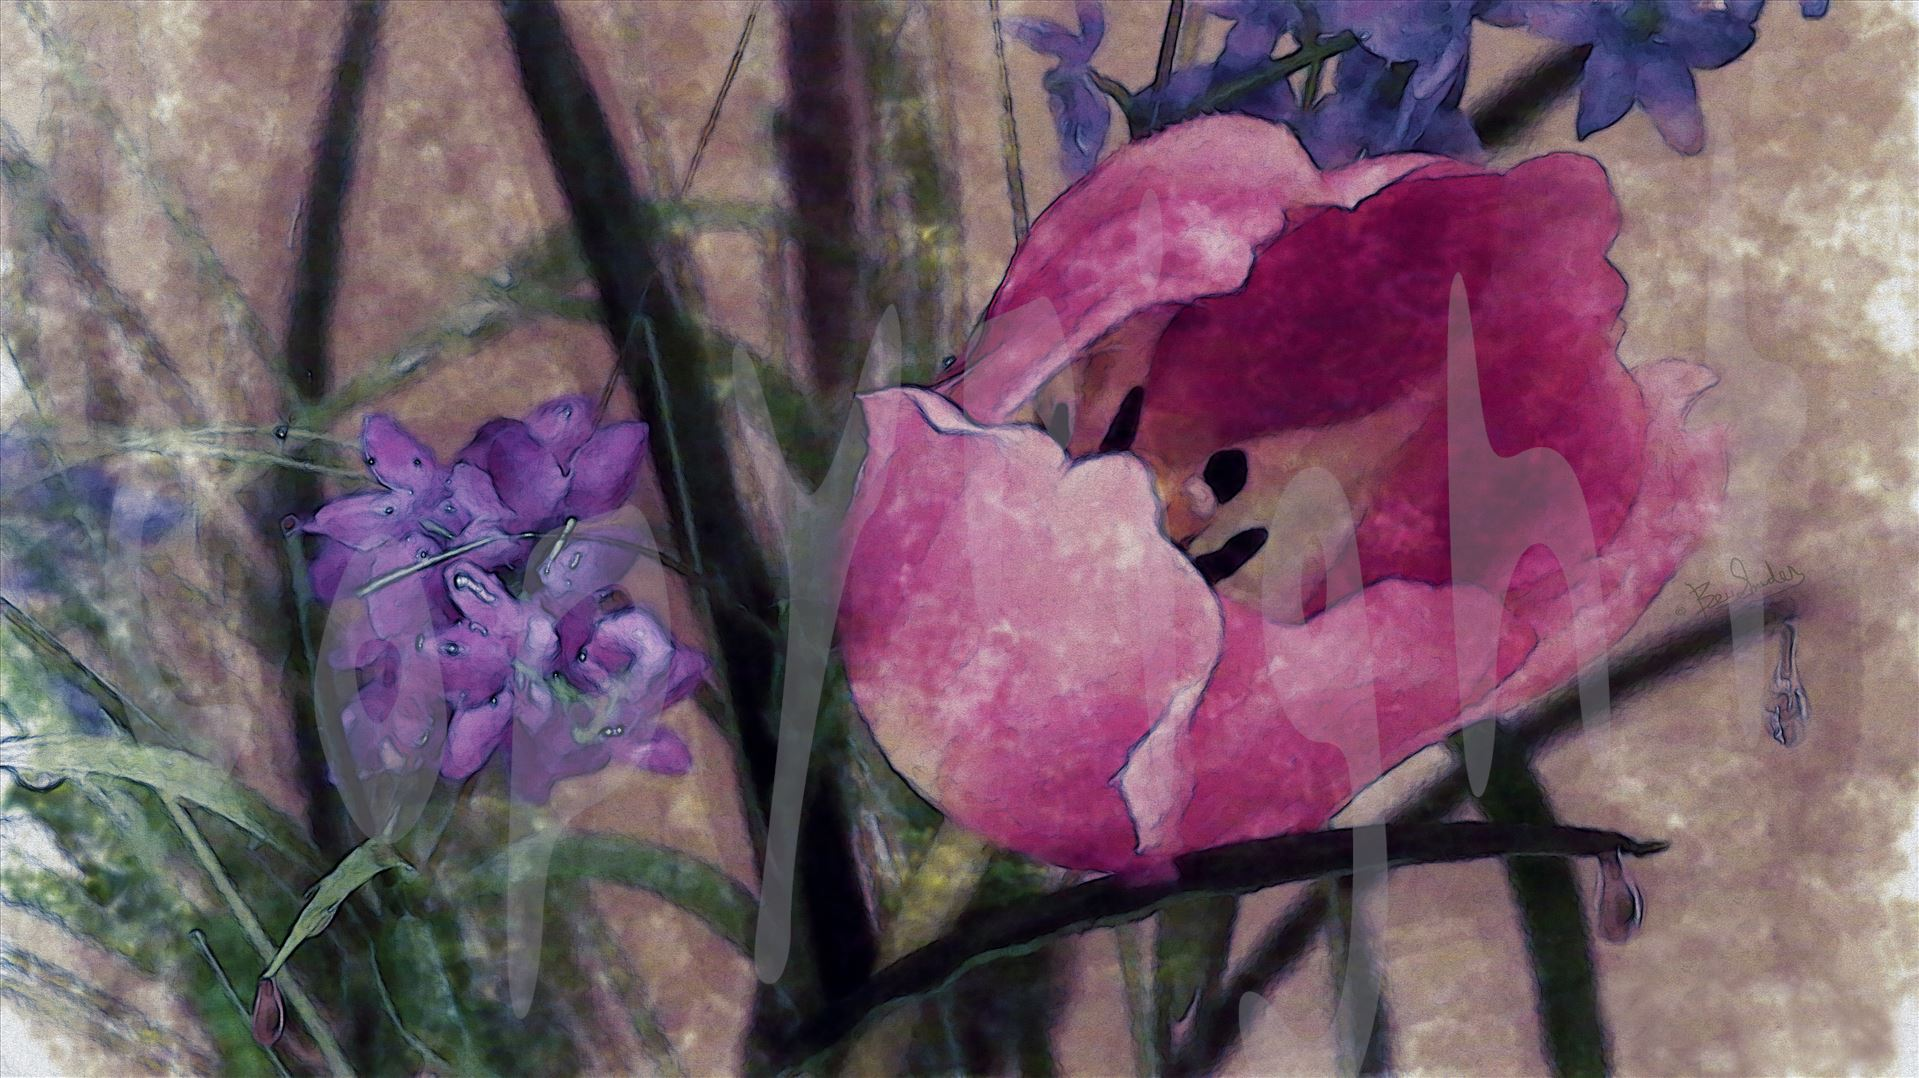 A Pale Pink Tulip 4681 A Pale Pink Tulip sways in the rain and wild grasses by Snookies Place of Wildlife and Nature